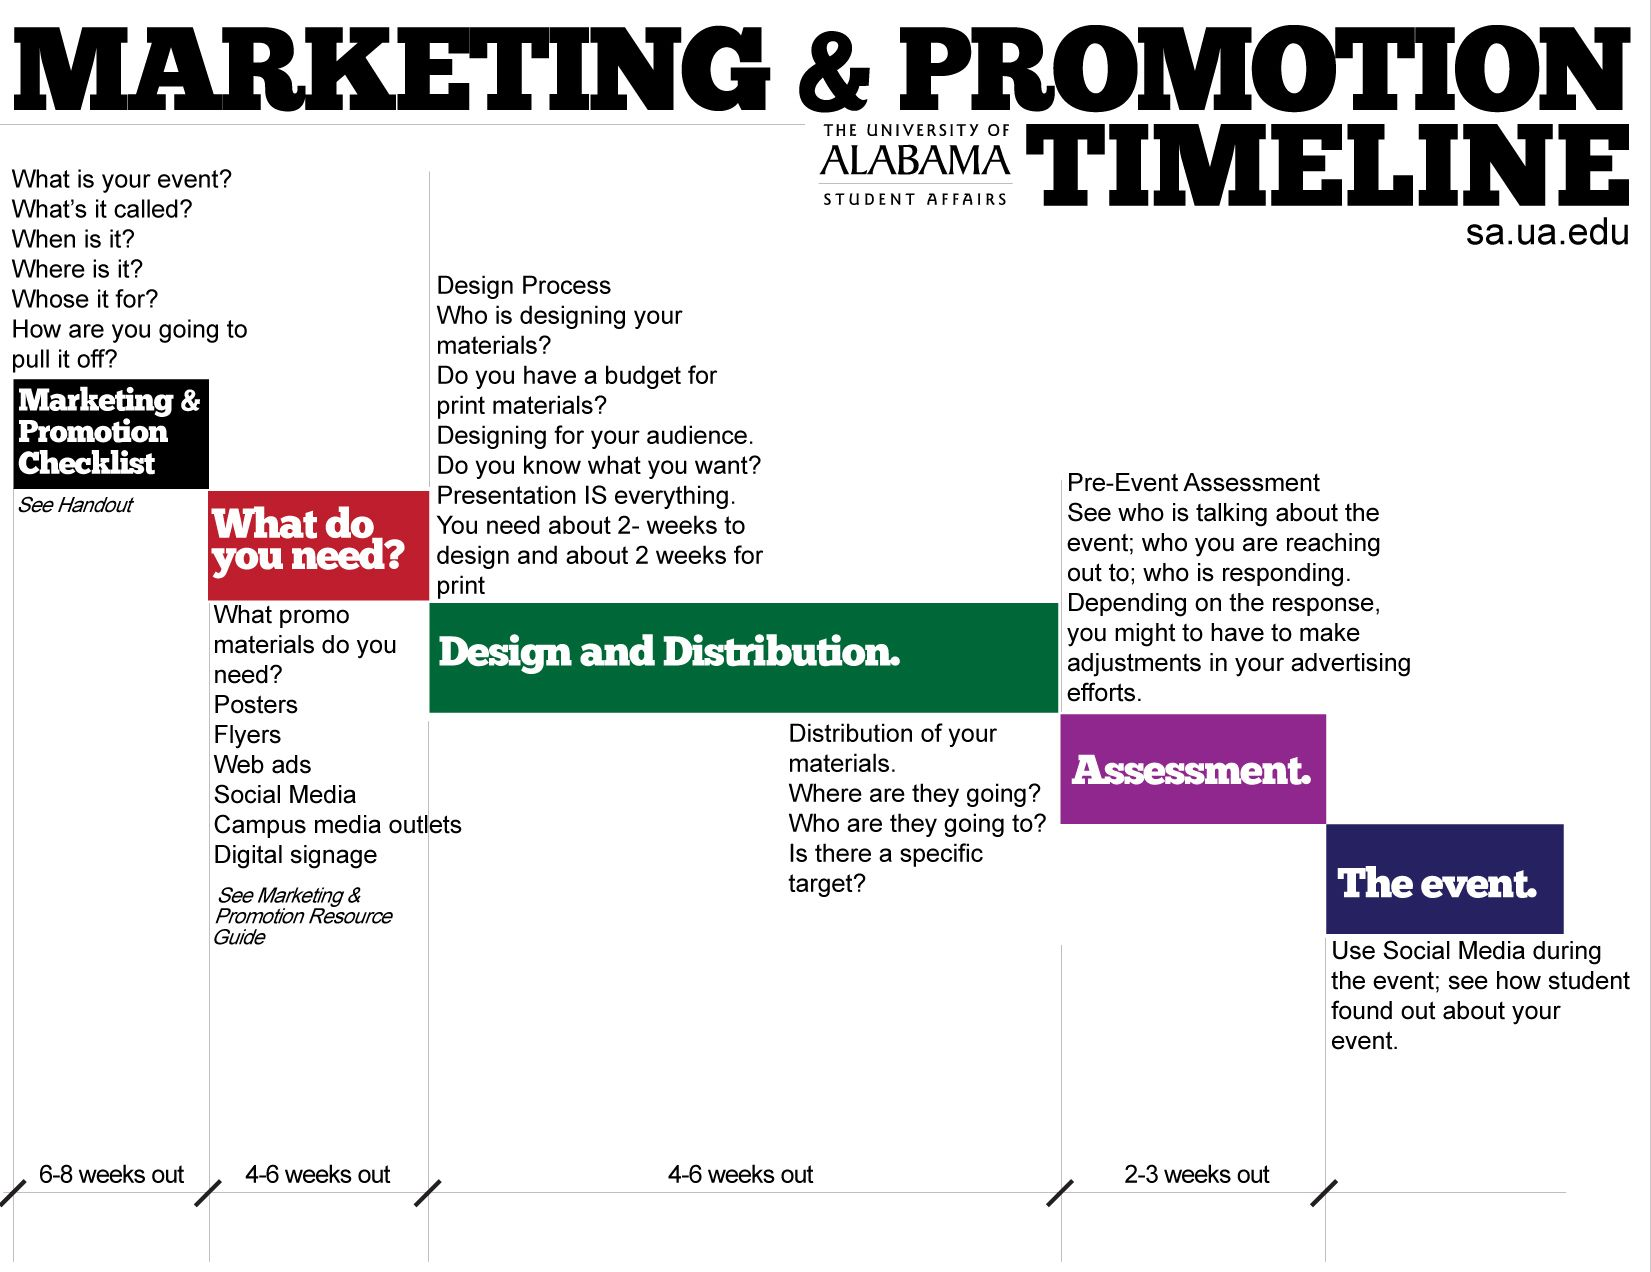 mkt reports Marketing plan template, Event marketing